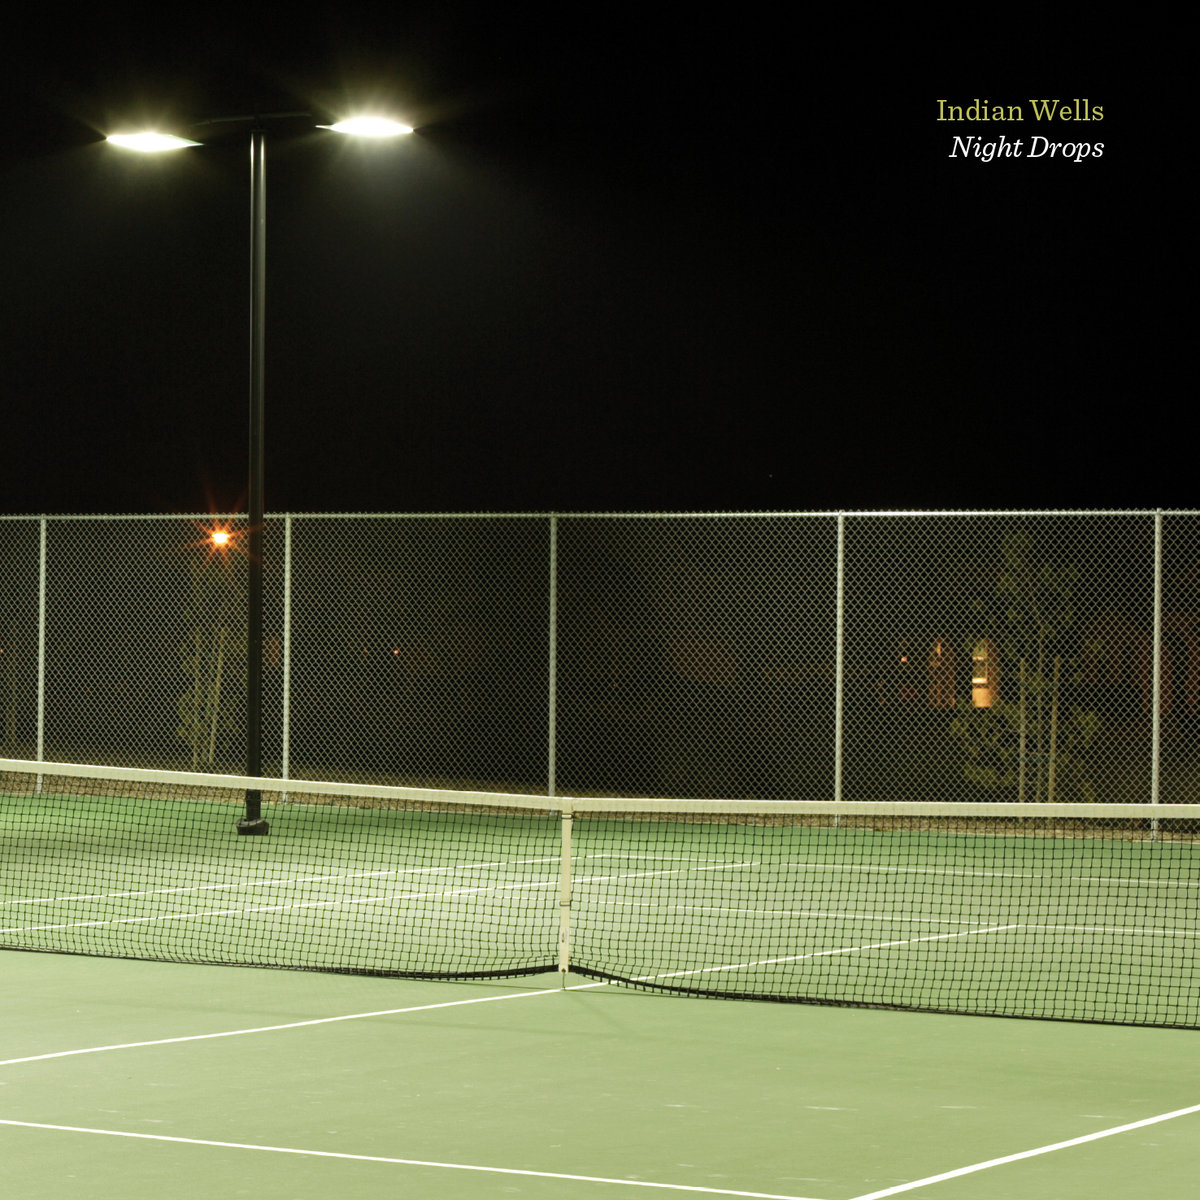 Indian Wells - After The Match @ 'Night Drops' album (alternative, ambient)